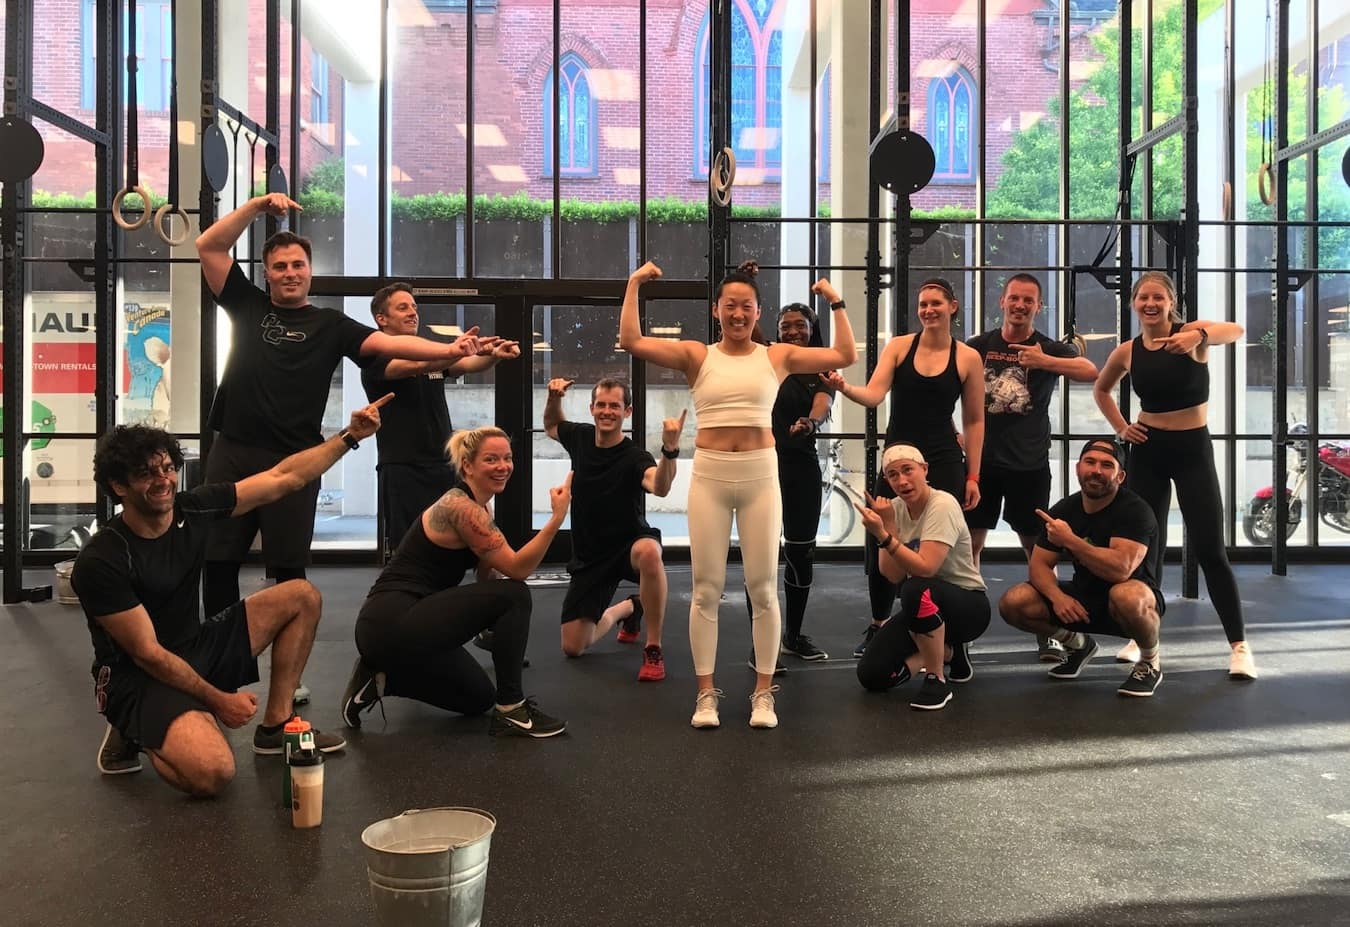 The community at F45 gyms vs Crossfit.